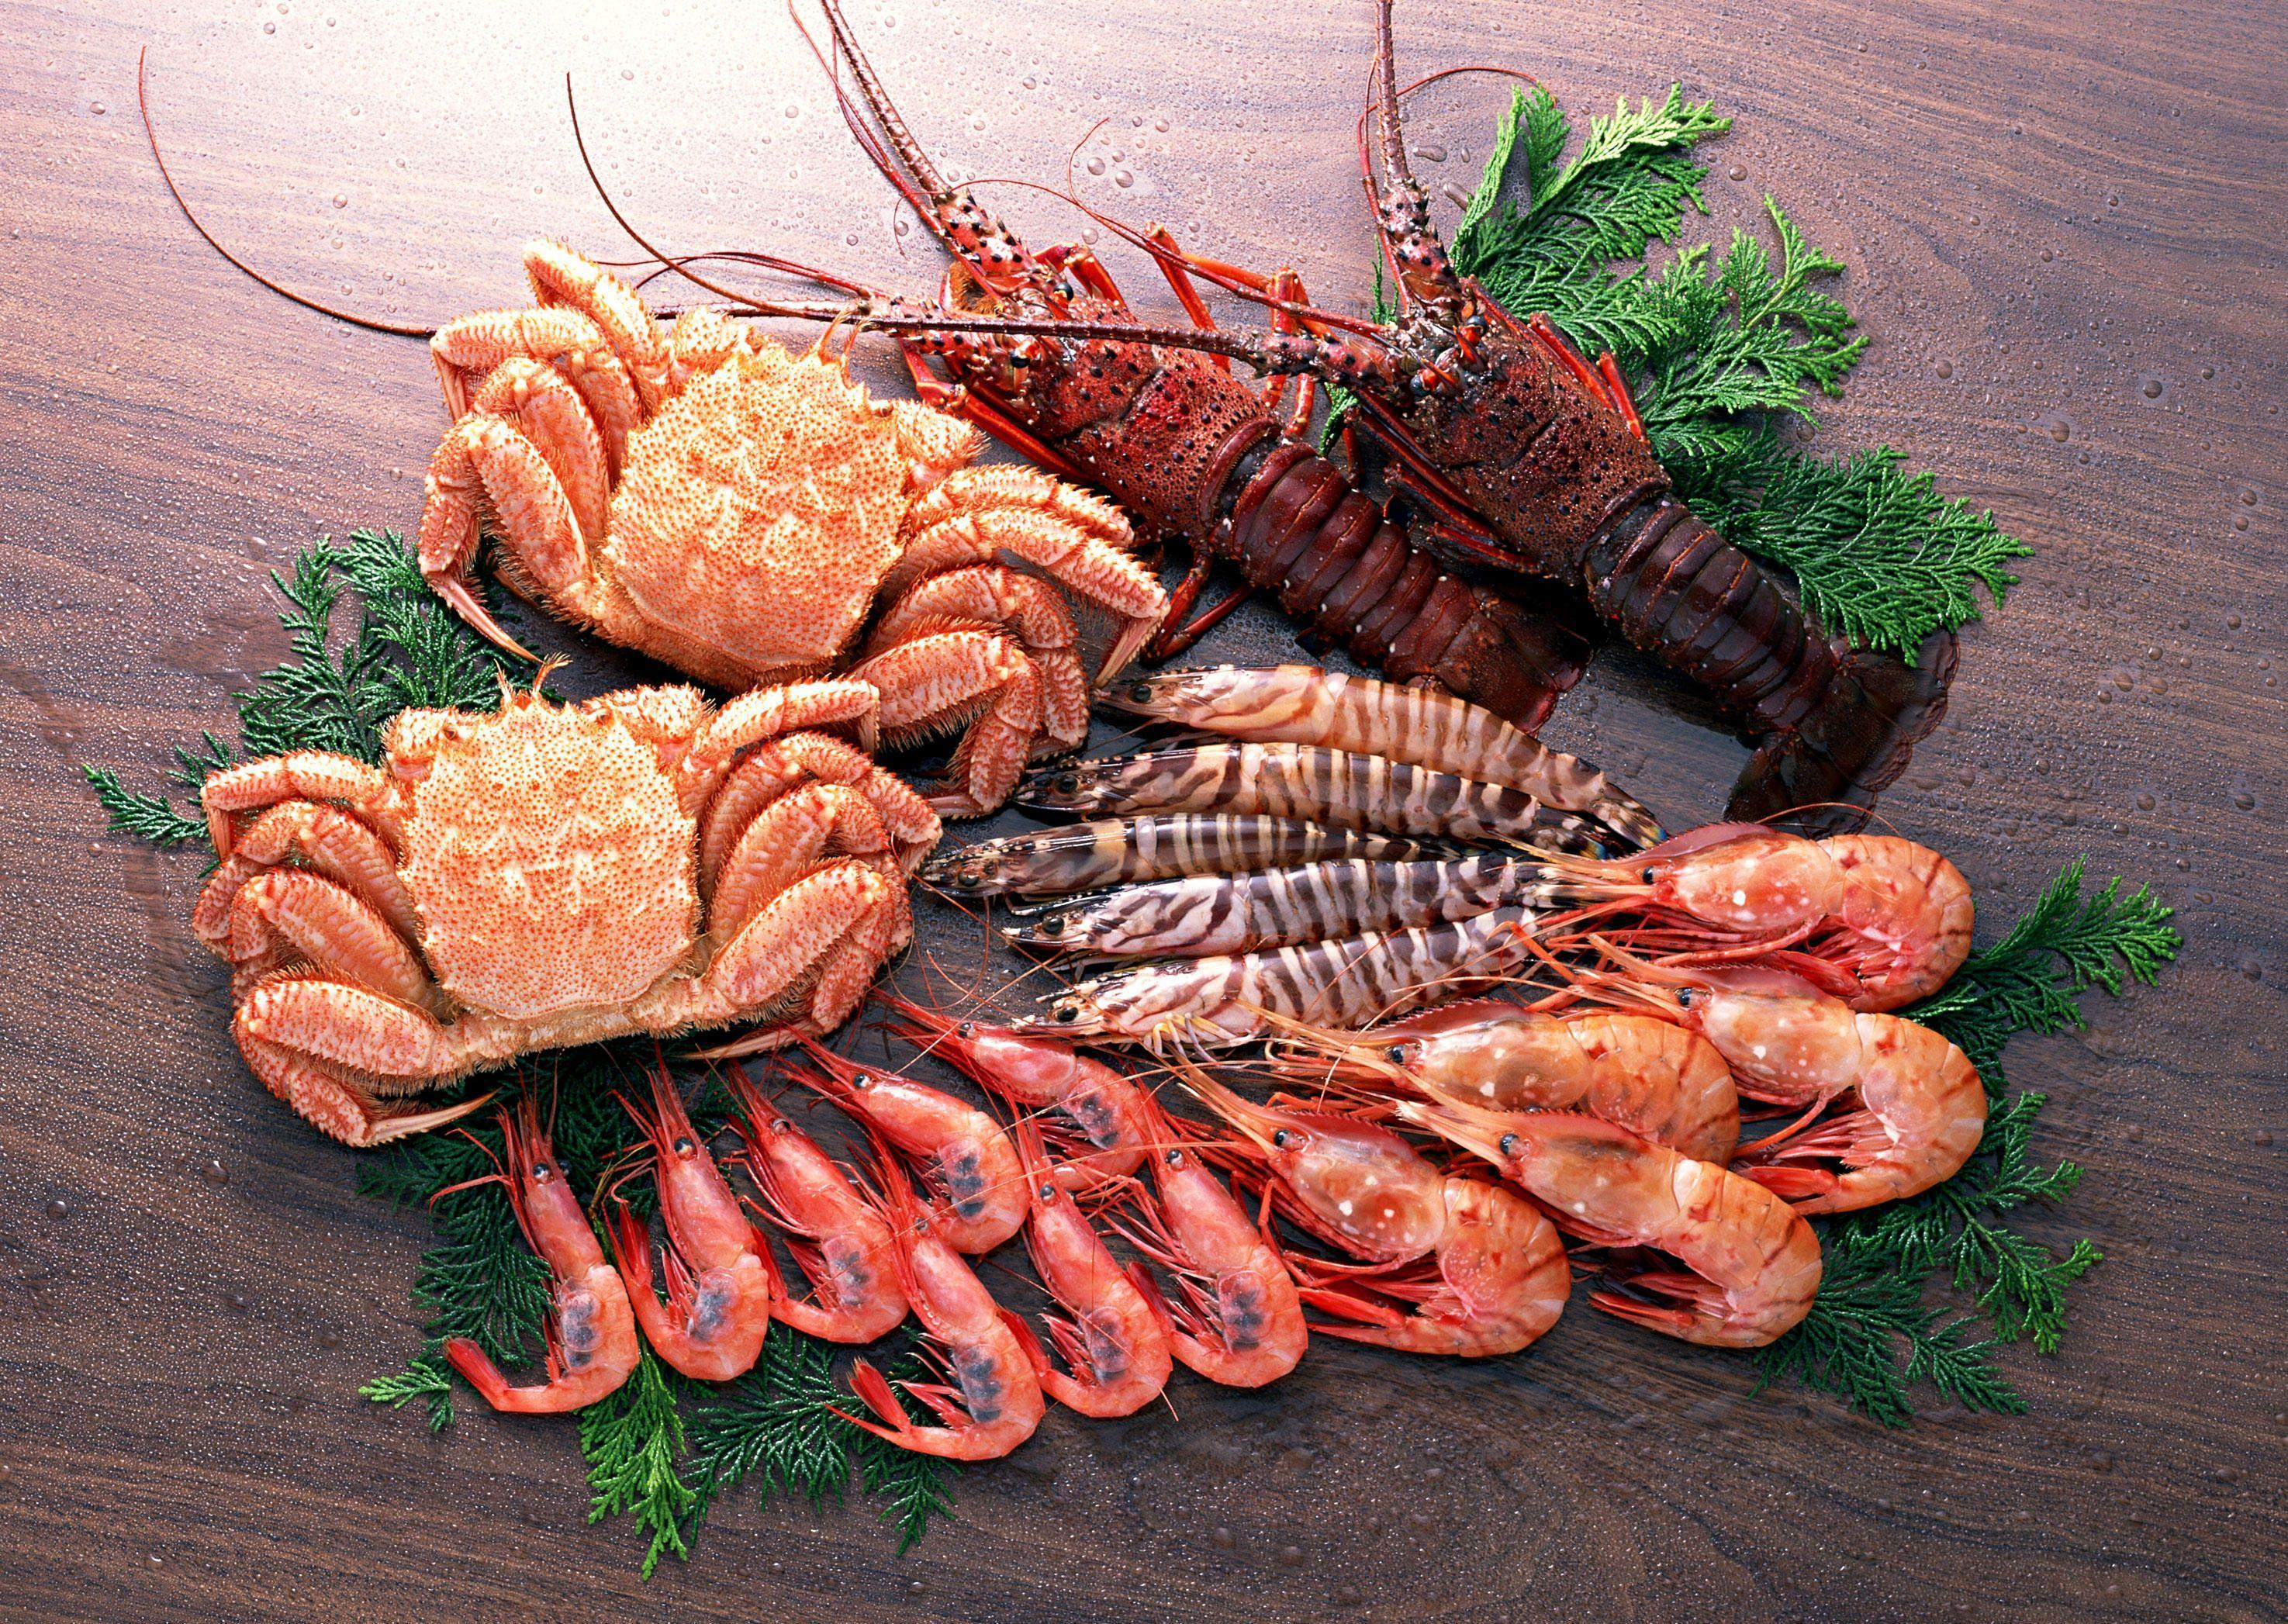 HD Seafood Wallpapers, Live Seafood Wallpapers (ERB51+ WP)